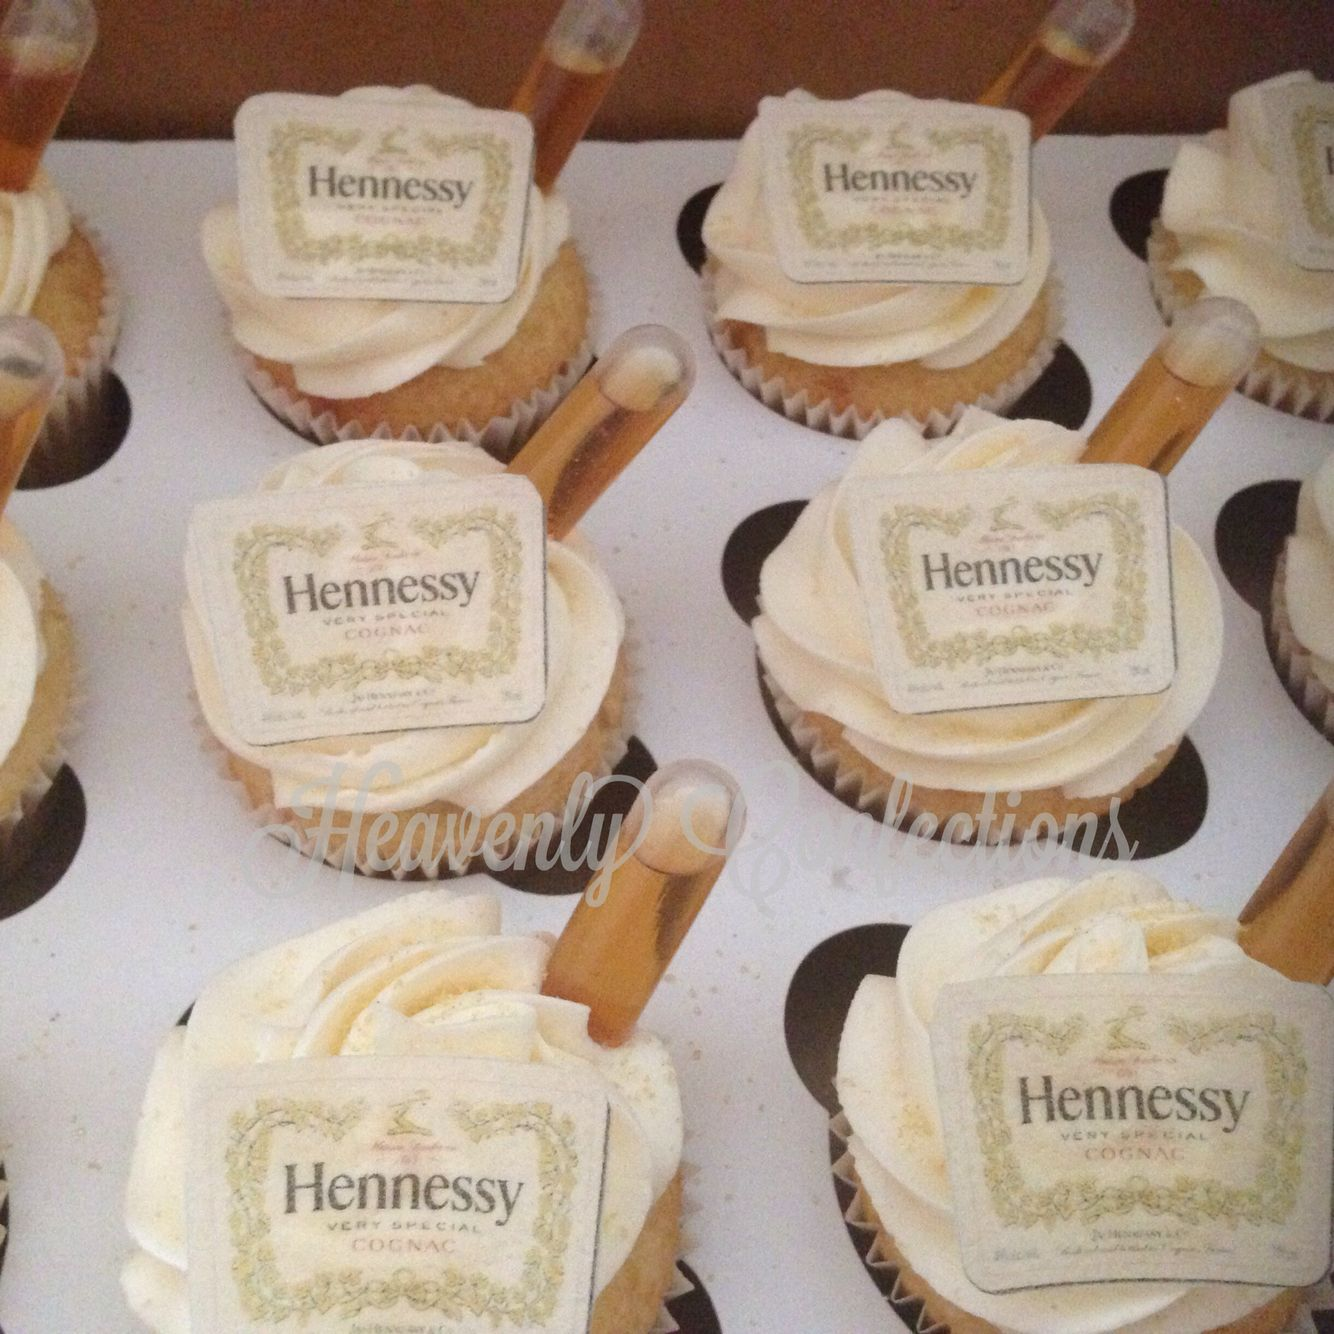 Liquor Bottle Cake Decorations: Hennessy Cupcakes With A Shot.